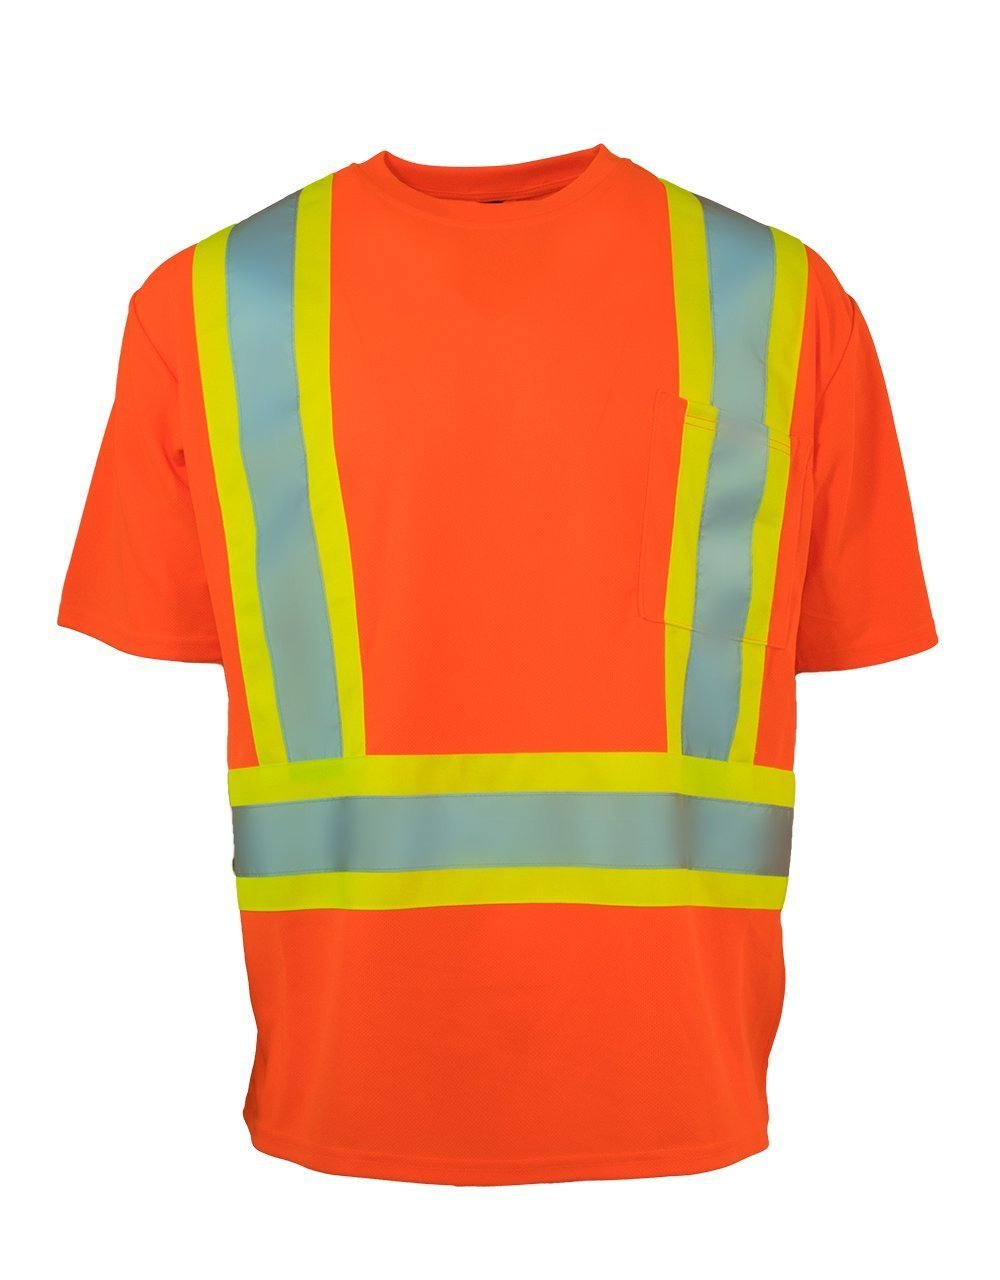 Forcefield - Safety T-Shirt - 022-CBECSA - Orange